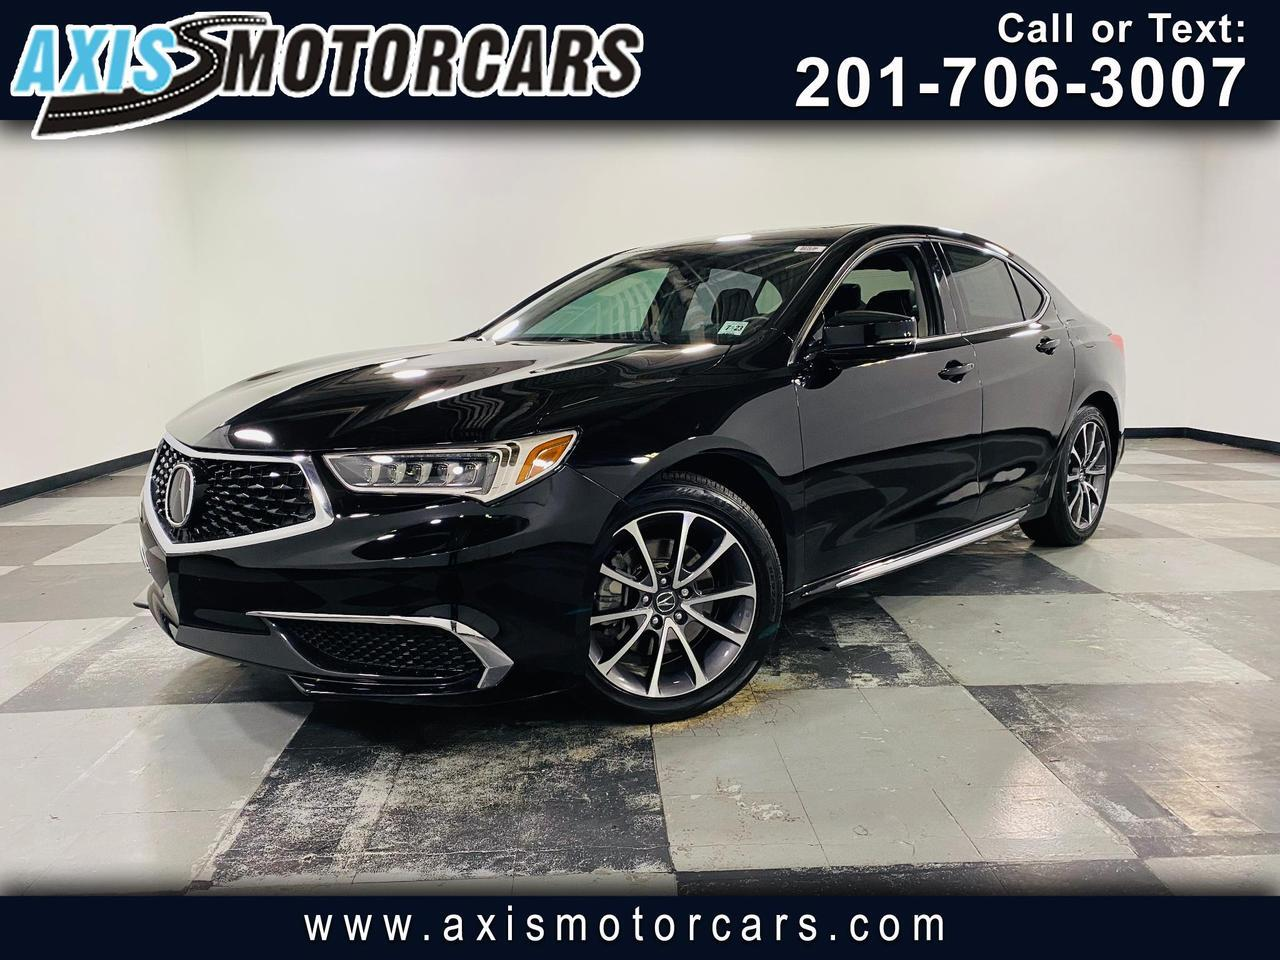 2018 Acura TLX 3.5L FWD w/Technology Pkg Jersey City NJ